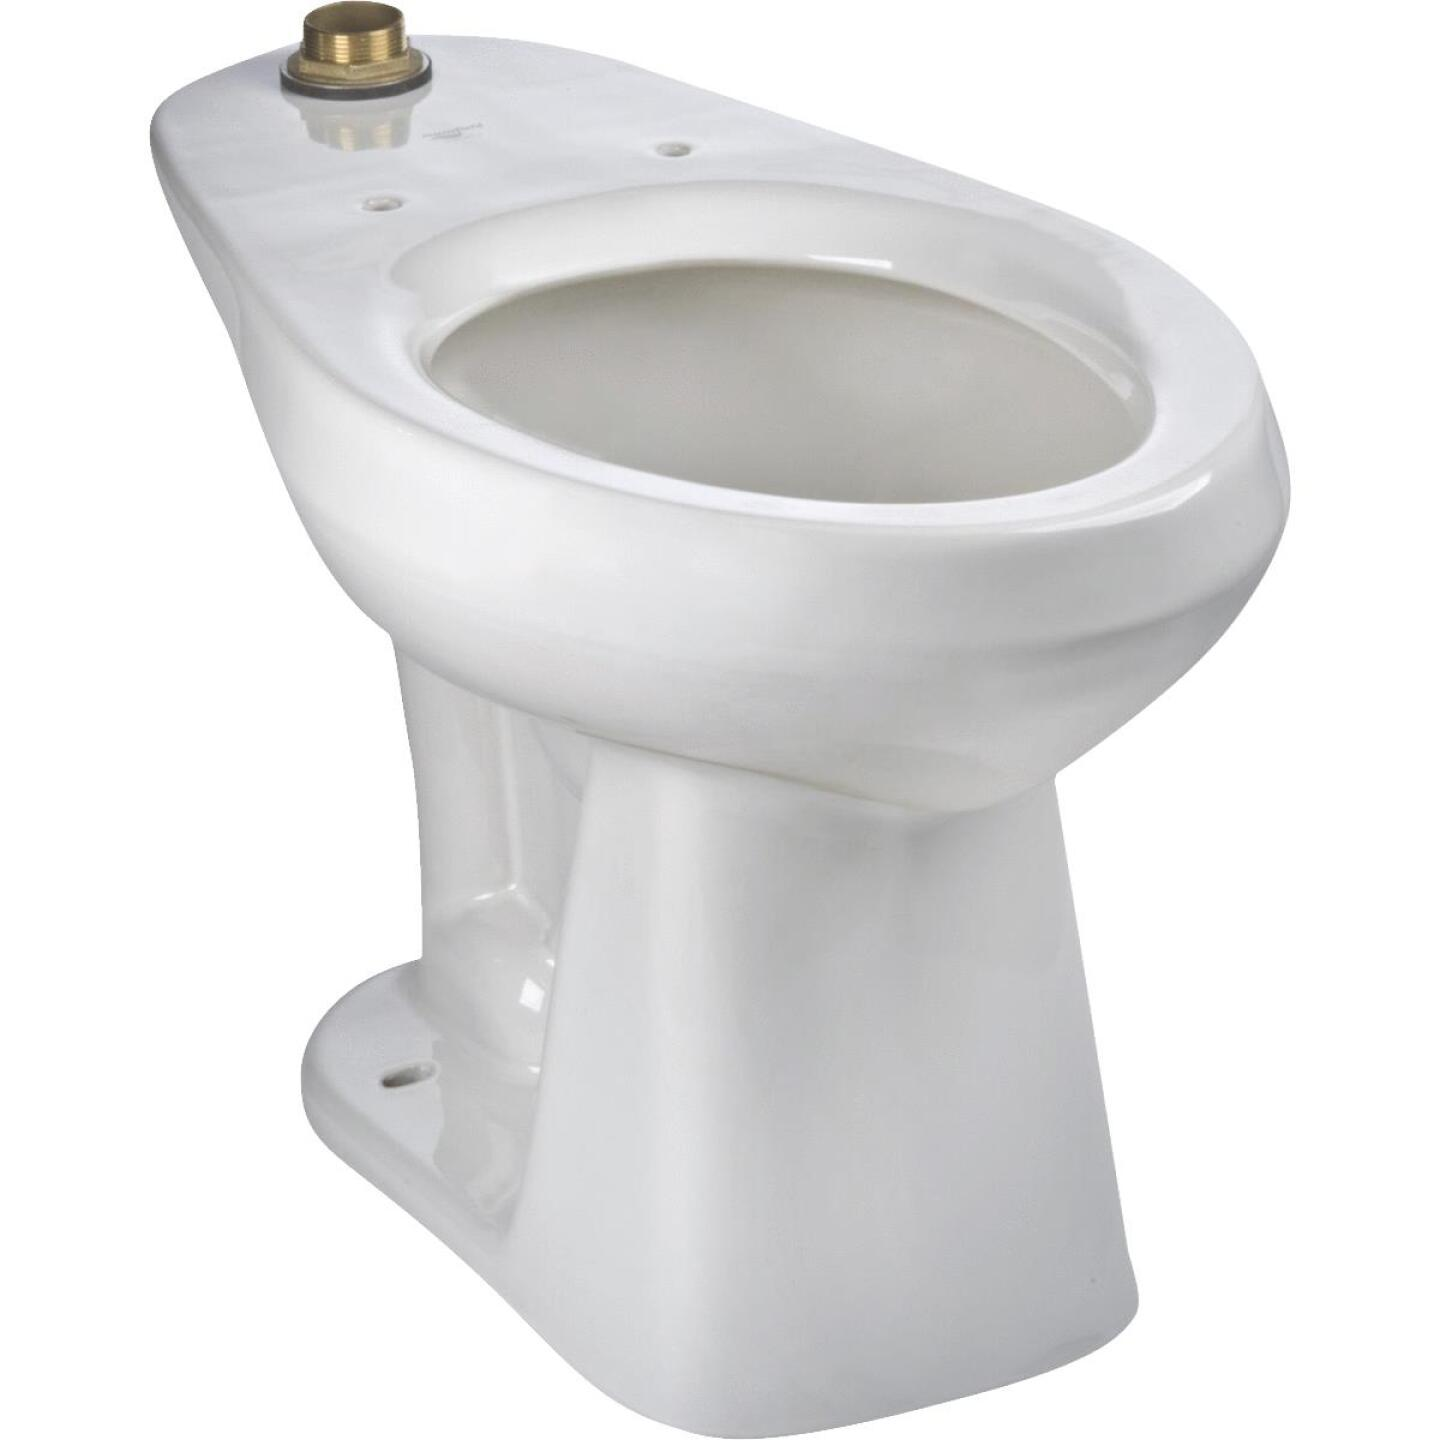 Mansfield Adriatic White Elongated 17 In. ADA Toilet Bowl Image 1